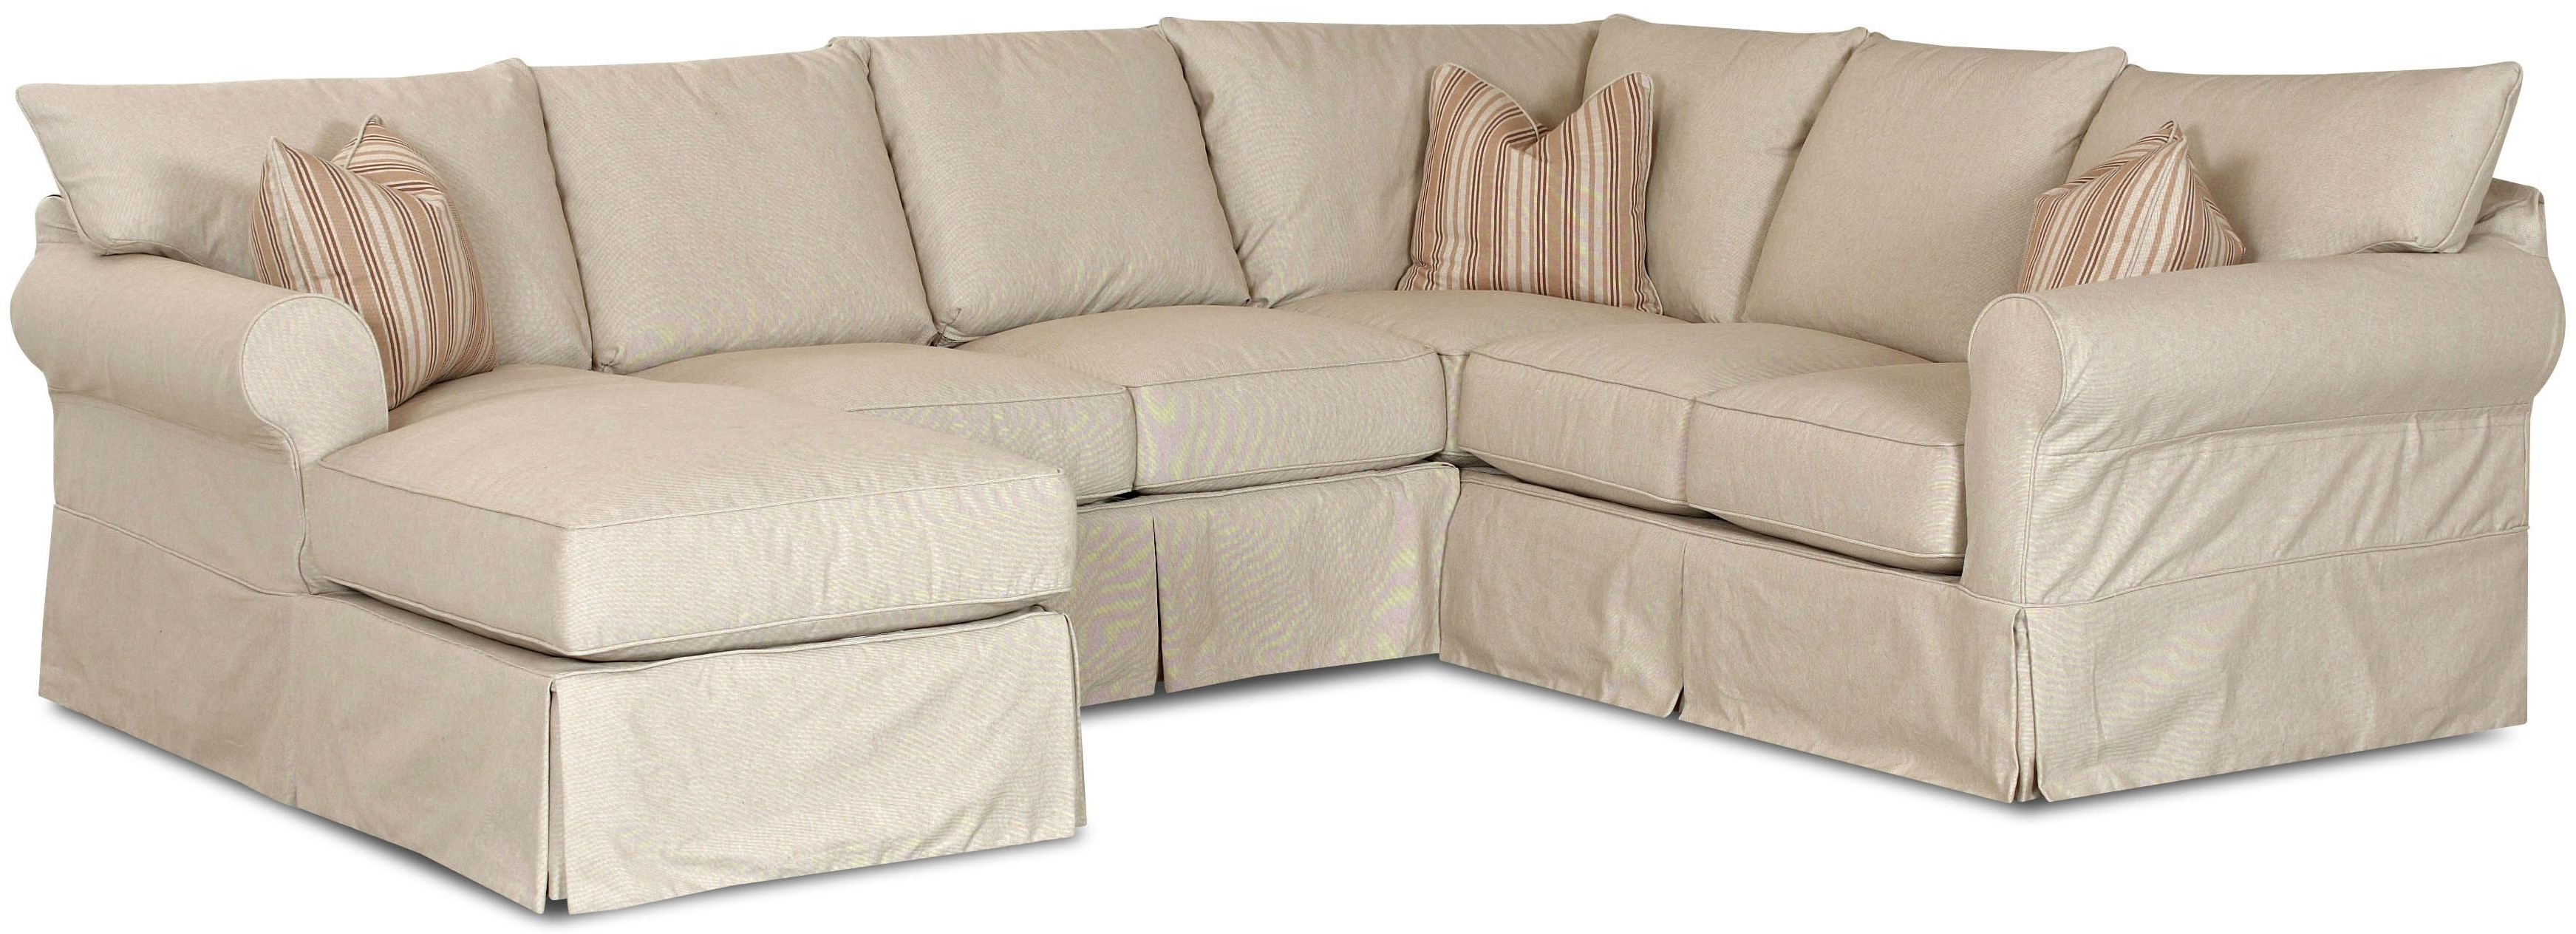 Slipcovers For Sectional Sofas With Chaise In Fashionable Slipcovers For Sectional Sofas With Chaise – Cleanupflorida (View 4 of 15)